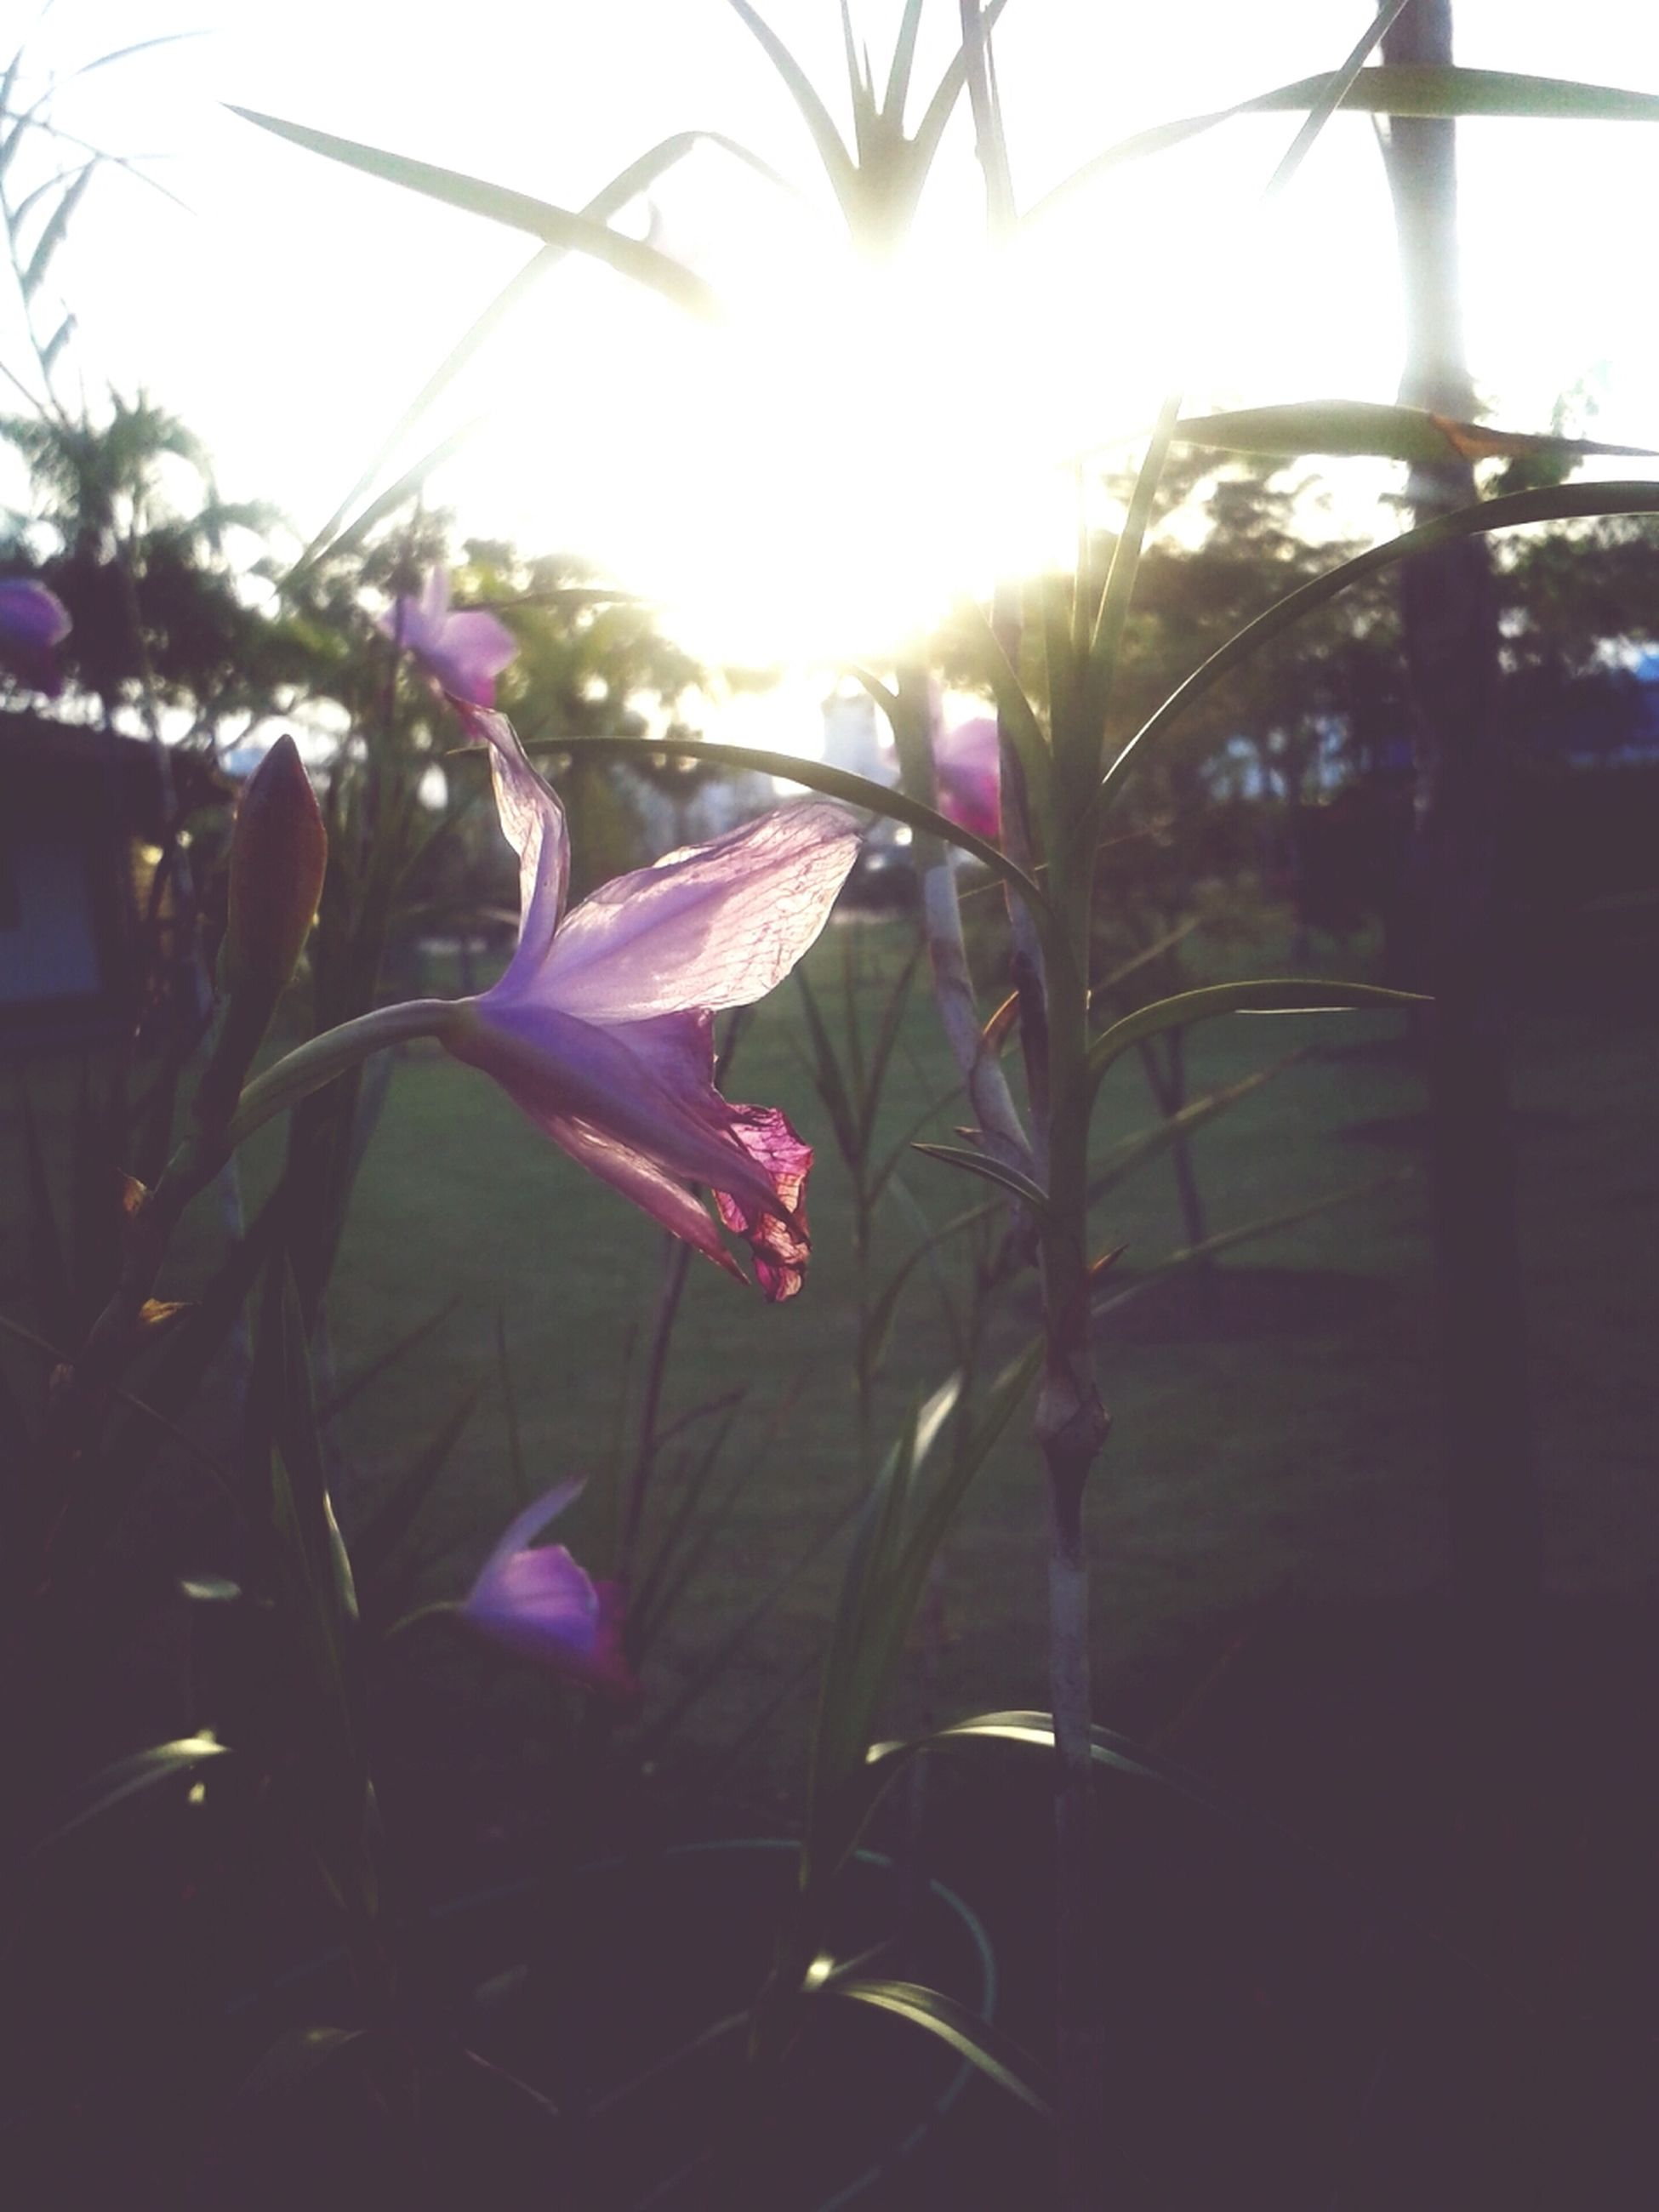 flower, sunbeam, growth, sunlight, plant, sun, fragility, freshness, close-up, nature, beauty in nature, focus on foreground, lens flare, purple, no people, day, stem, petal, leaf, indoors